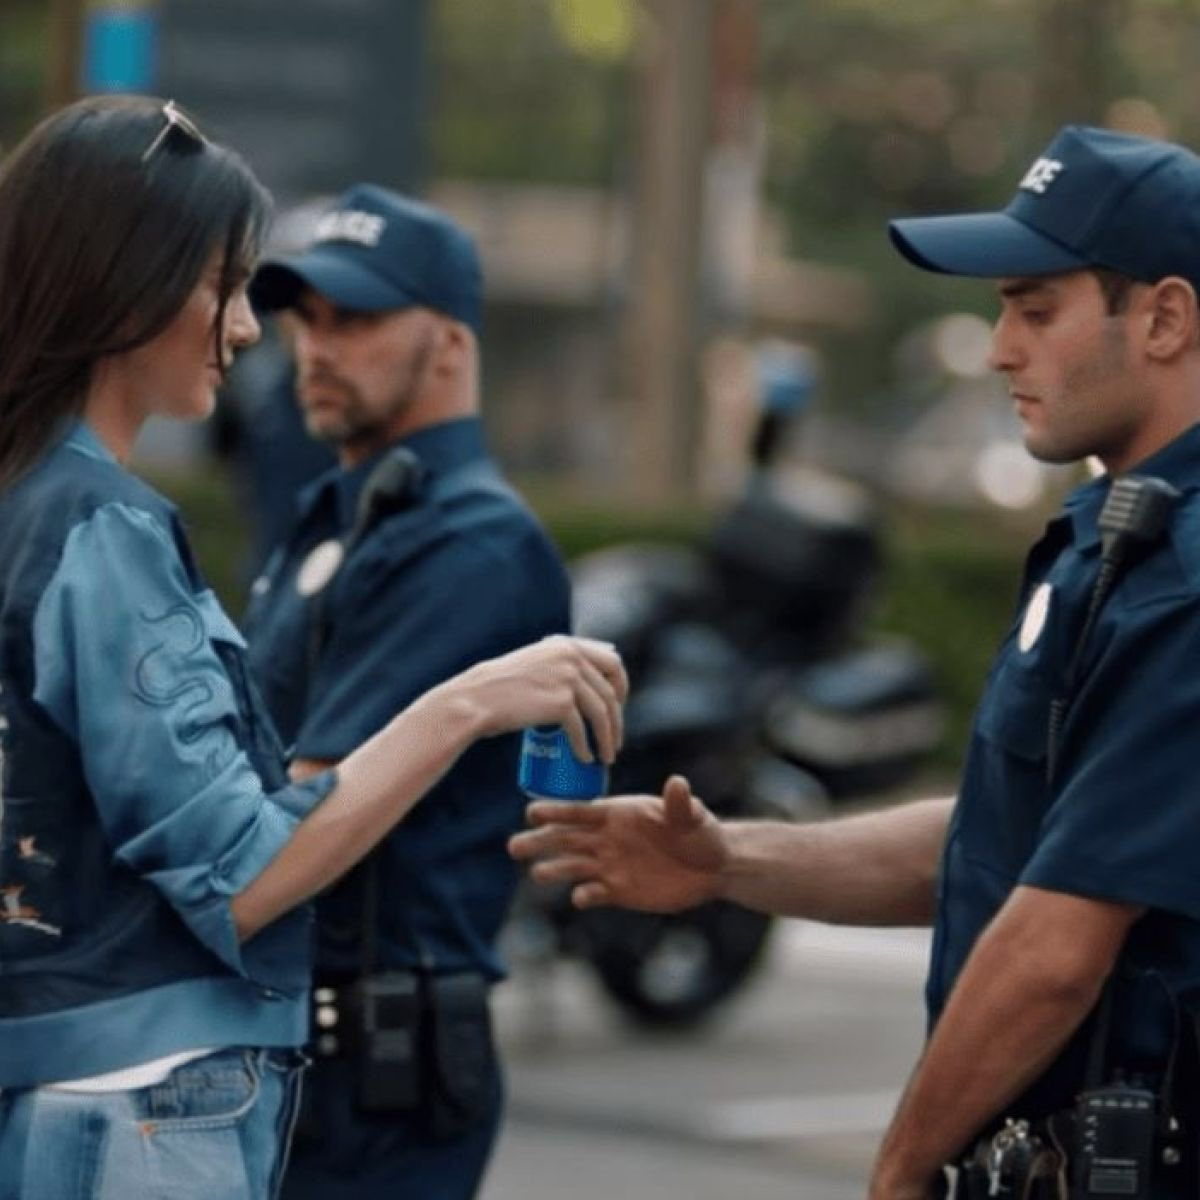 the only way to stop these riots is to send in Kendall Jenner with a shit load of Pepsi's